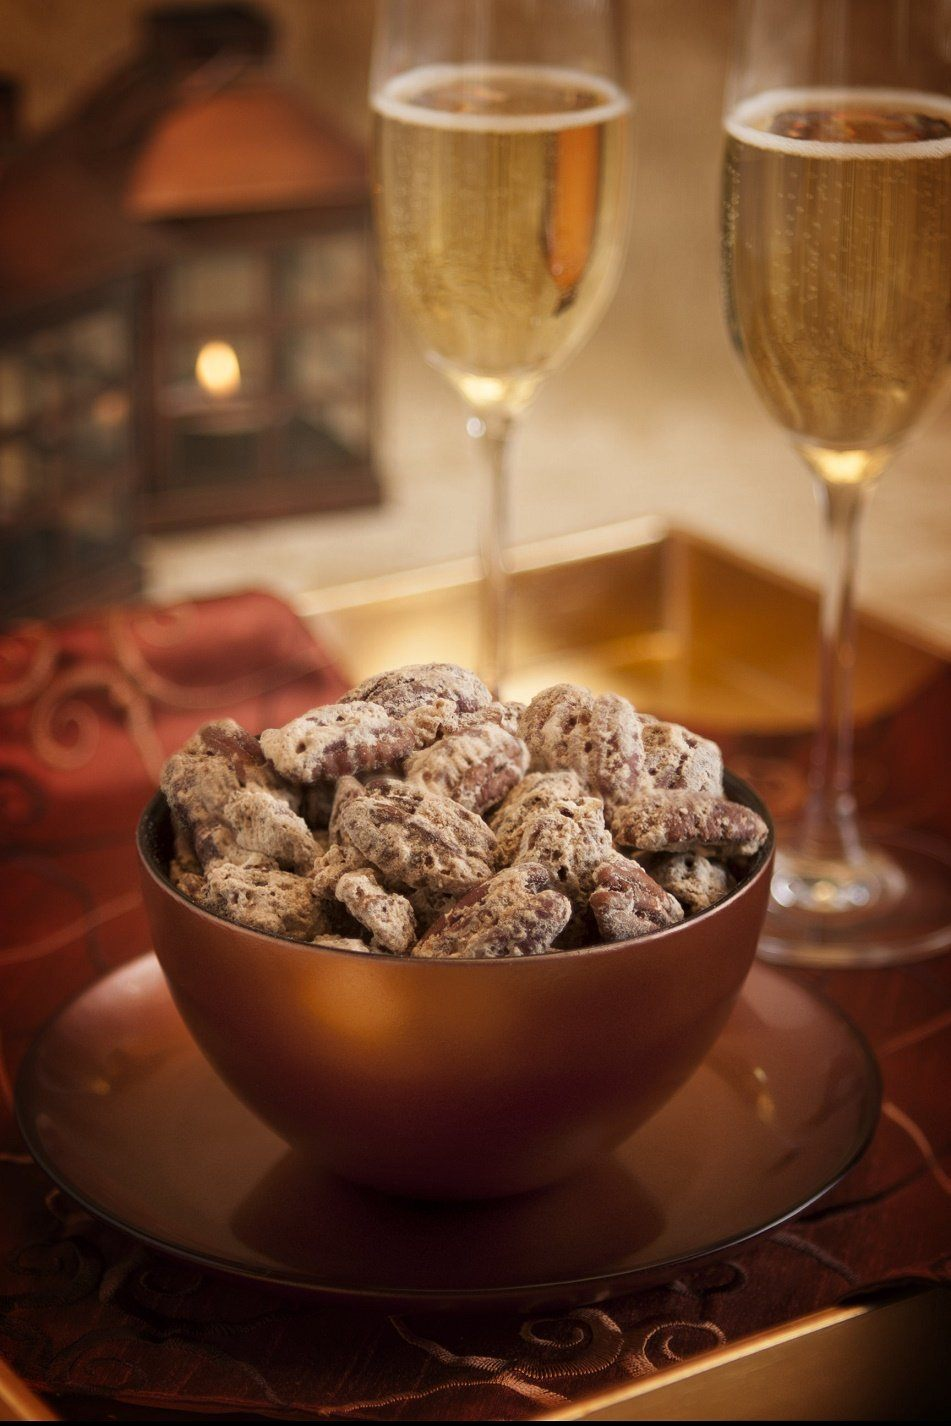 Cinnamon Spiced Pecans (Value Pack of 6 Tins) Gourmet Nuts in decorative bowl next to glasses of champagne